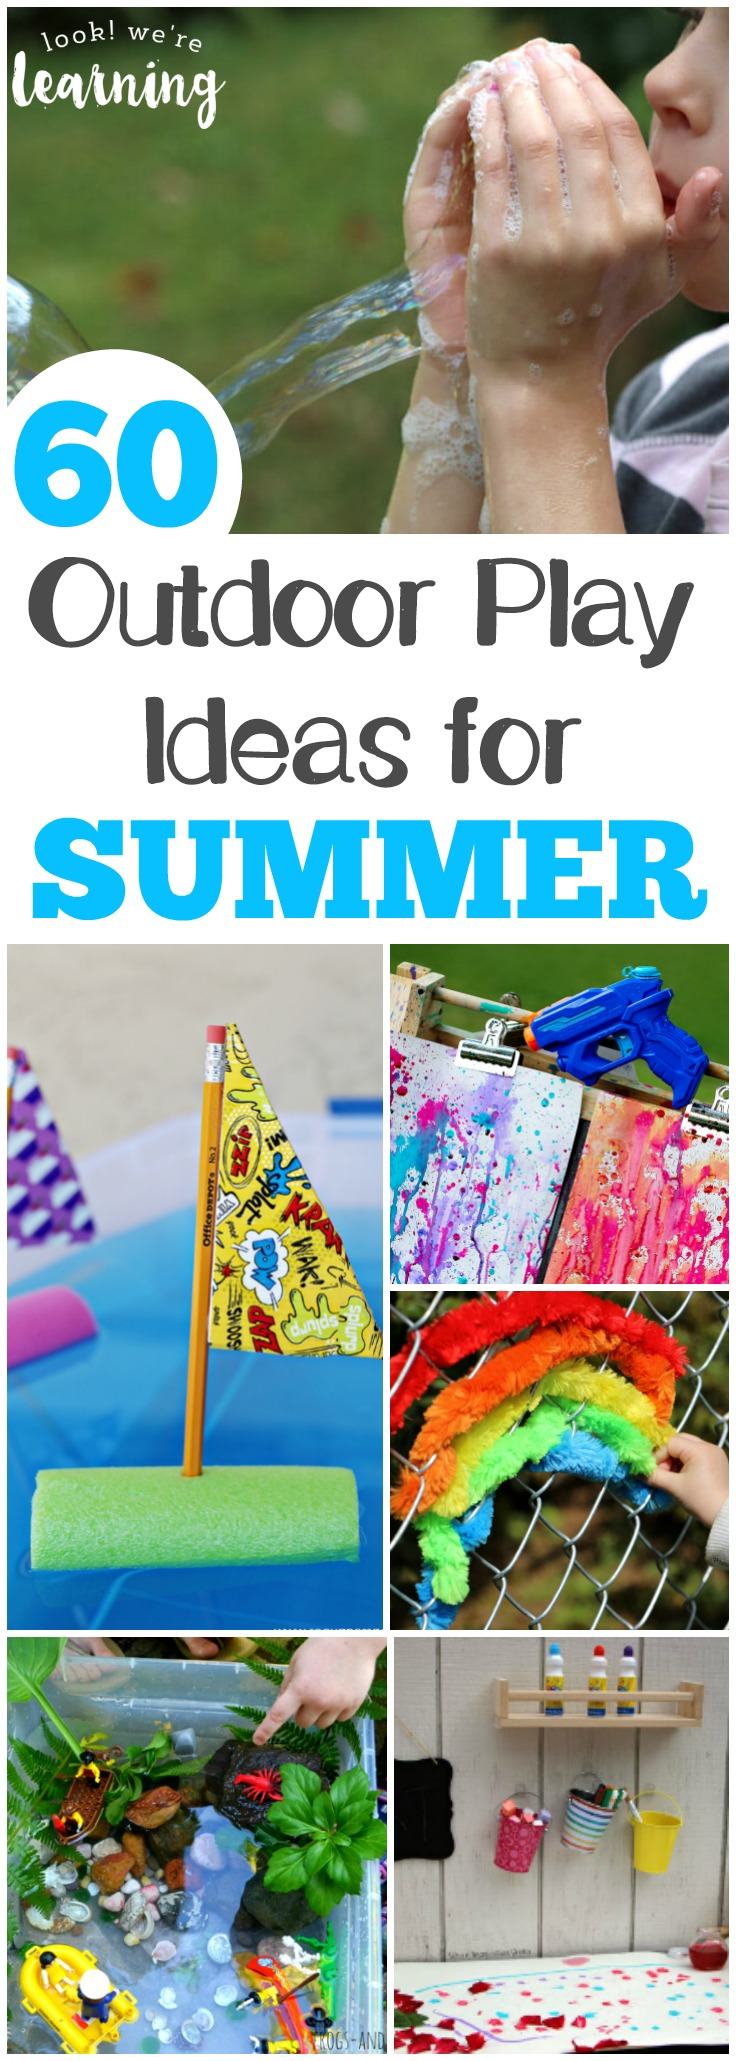 Head outside with the kids with this list of awesome fun in the sun ideas for summer!